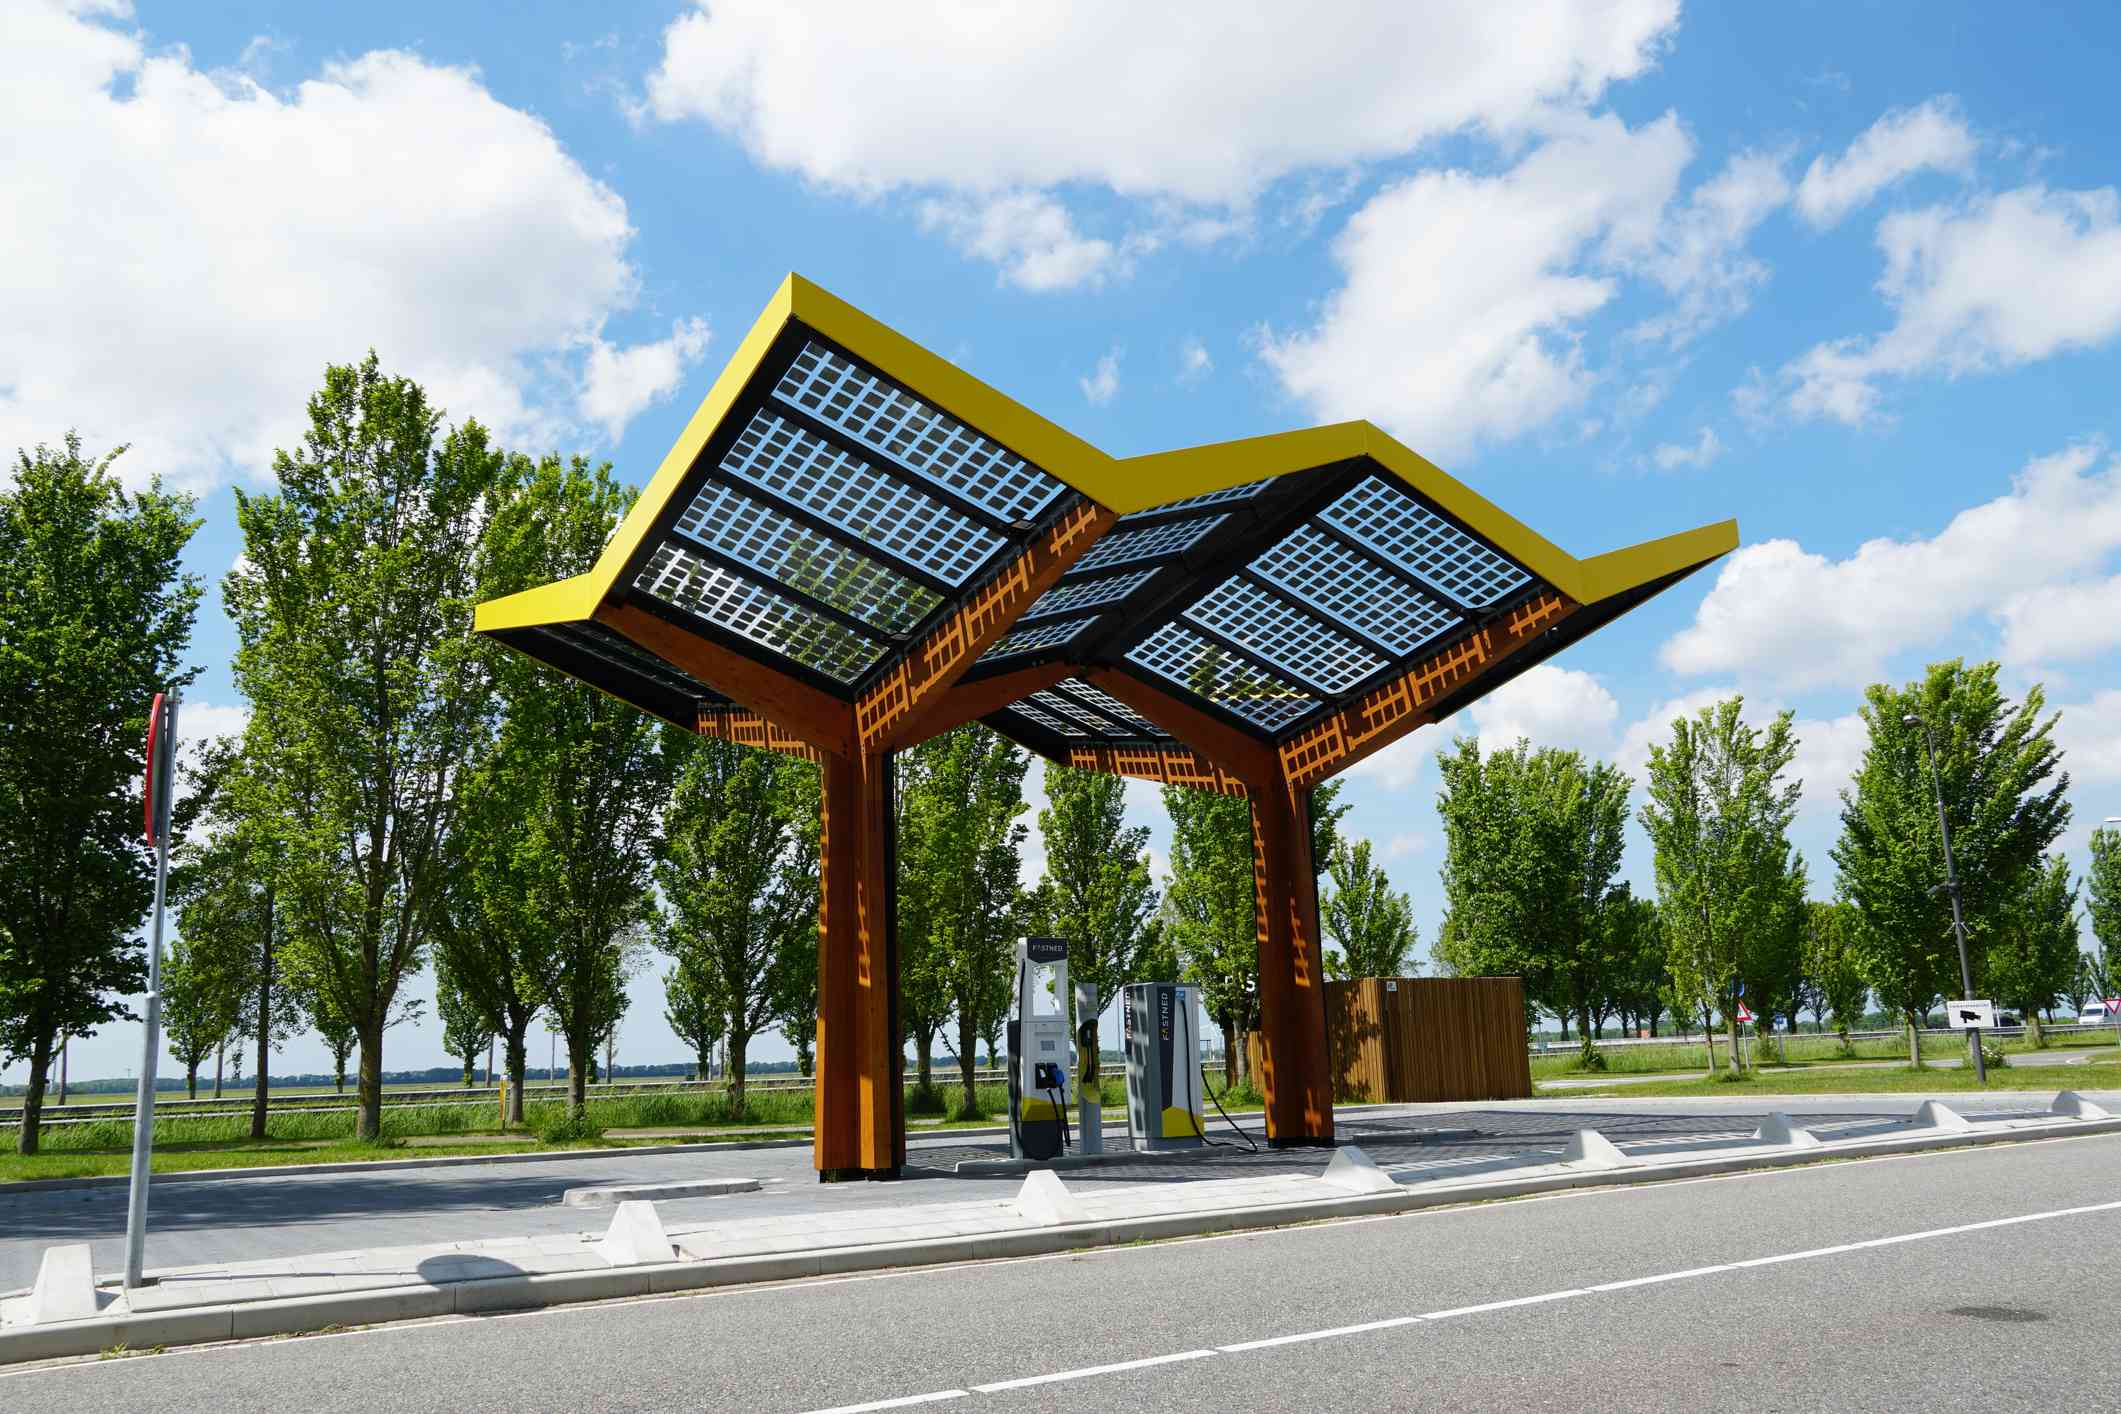 EV charging station using solar energy and batteries.